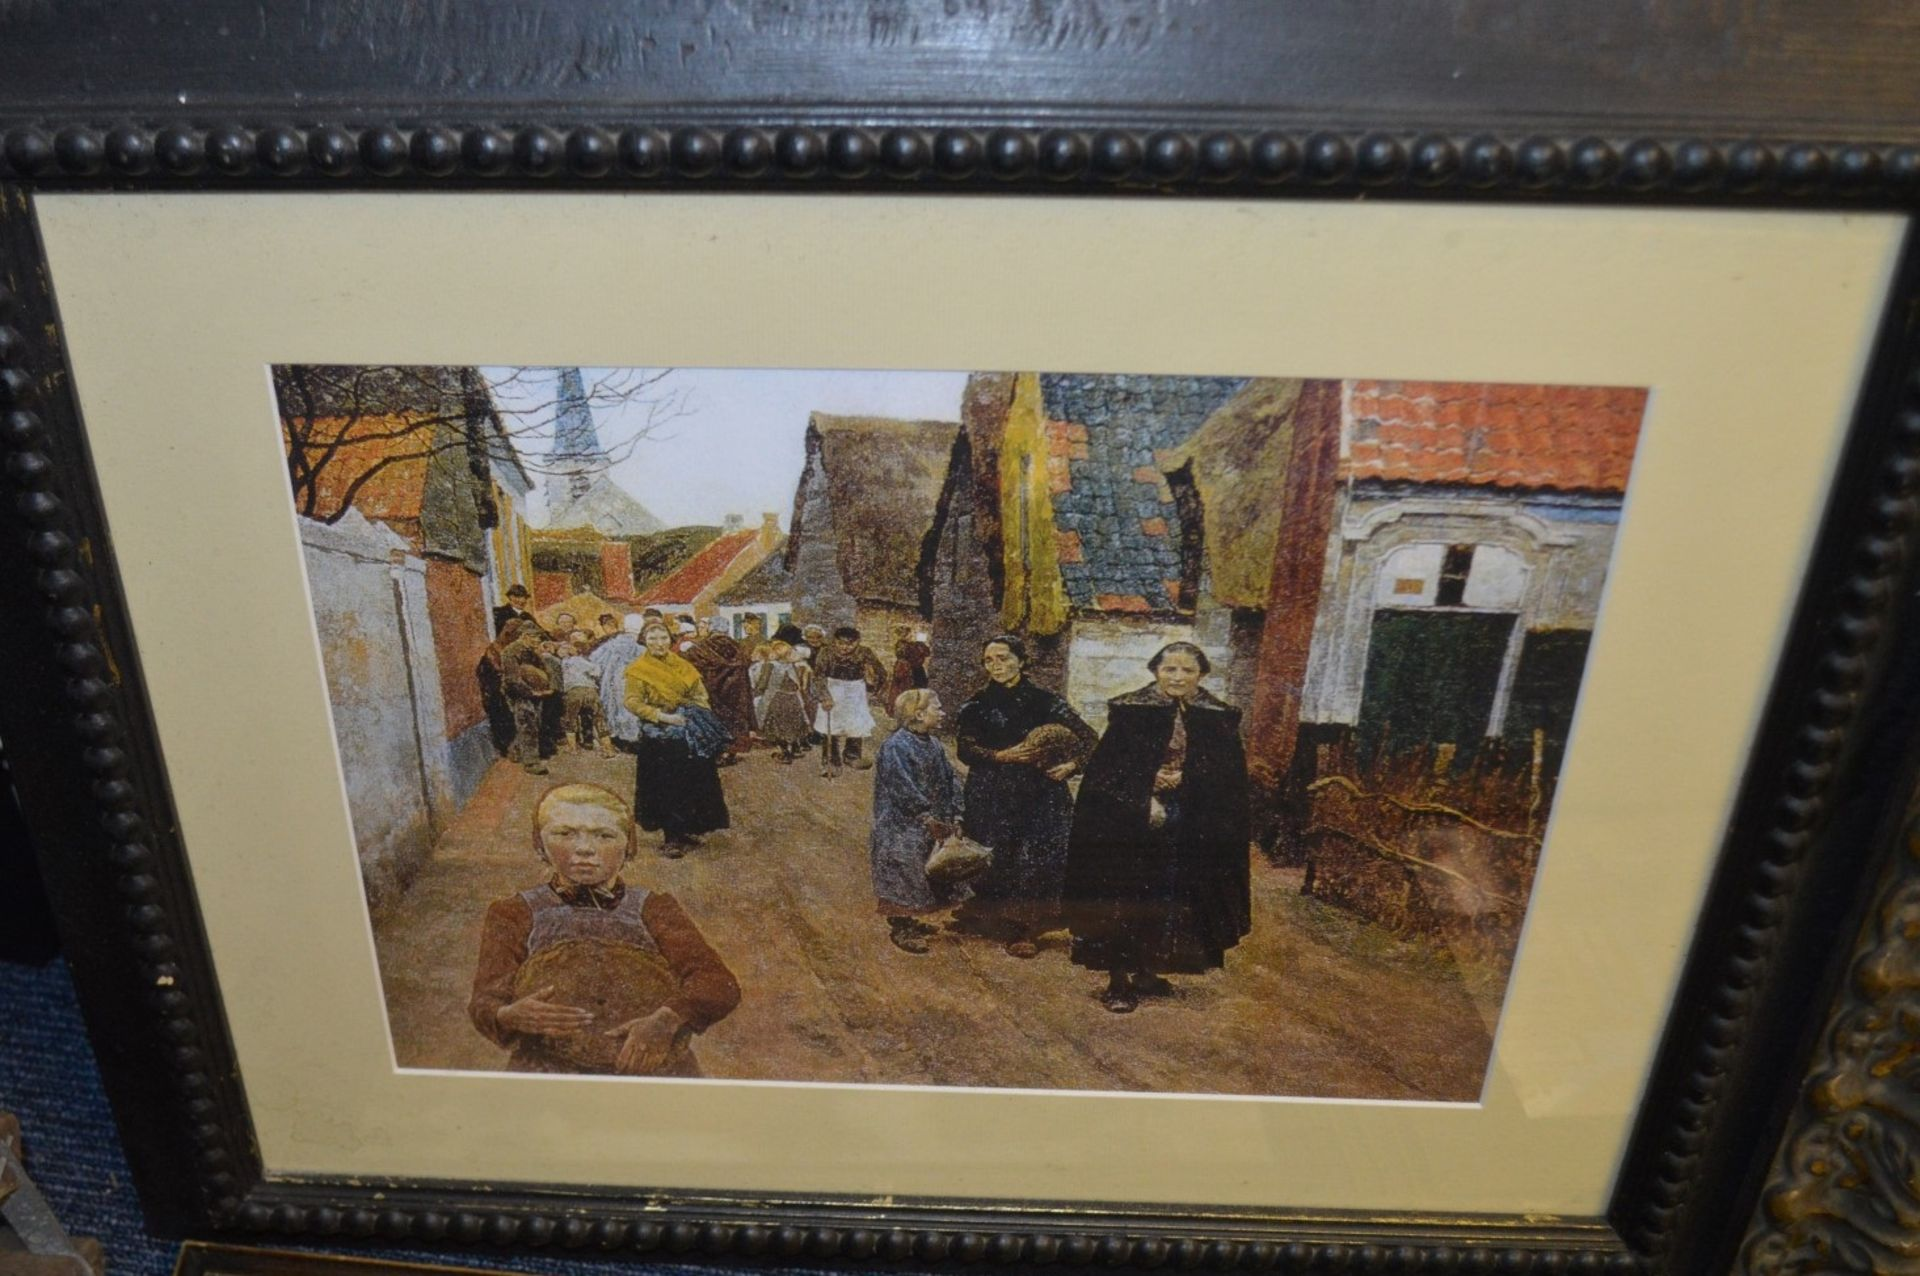 Lot 7506 - 6 x Assorted Framed Art Prints Based Around Bakery - Various Sizes, Largest Is 60 x 45cm - Ref: